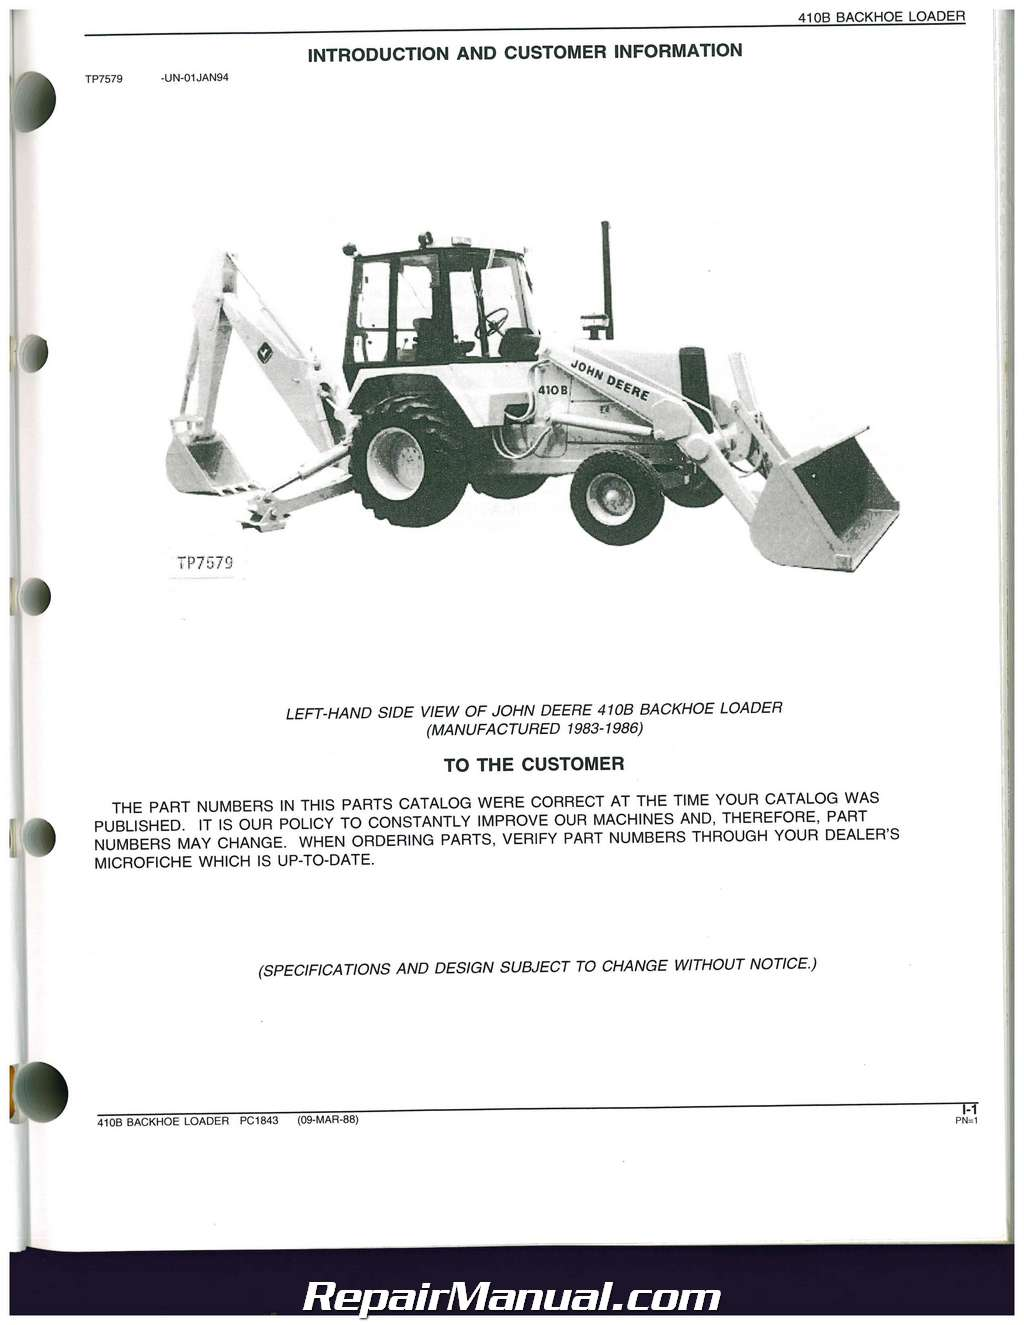 murray 40507x8c wiring diagram explained wiring diagramwrg 1641] murray 40507x8c wiring diagram john deere 410 backhoe service manual